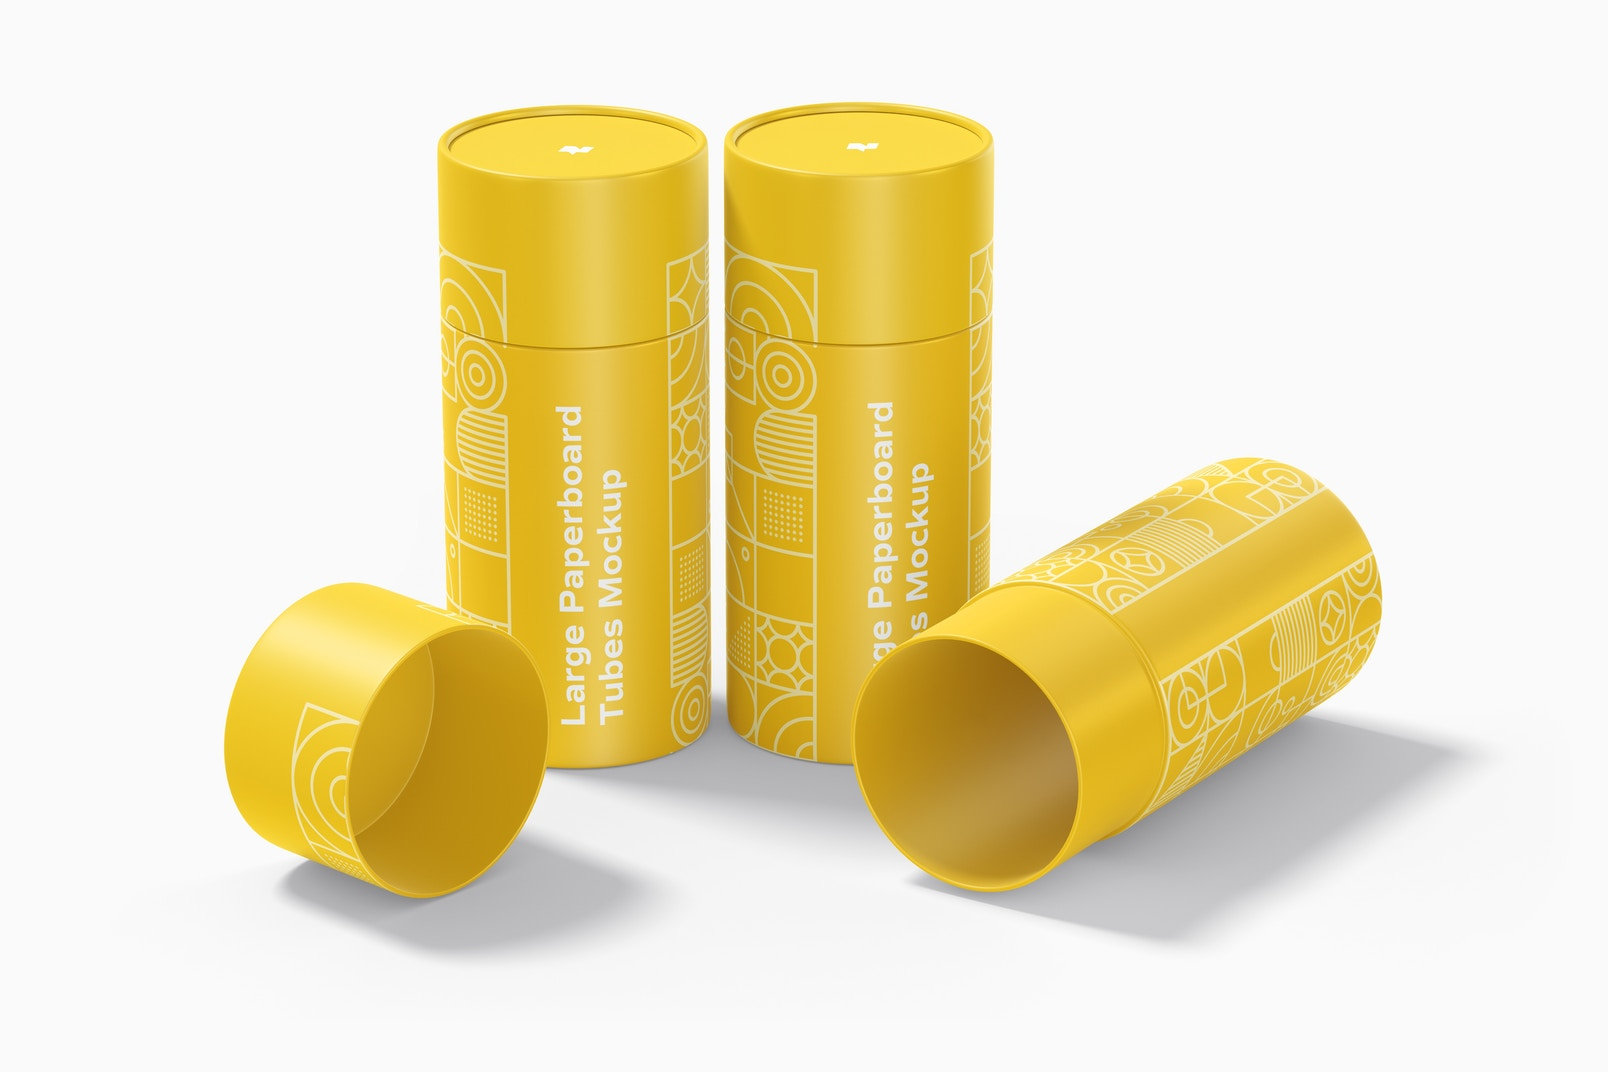 Large Paperboard Tubes Set Mockup, Standing and Dropped